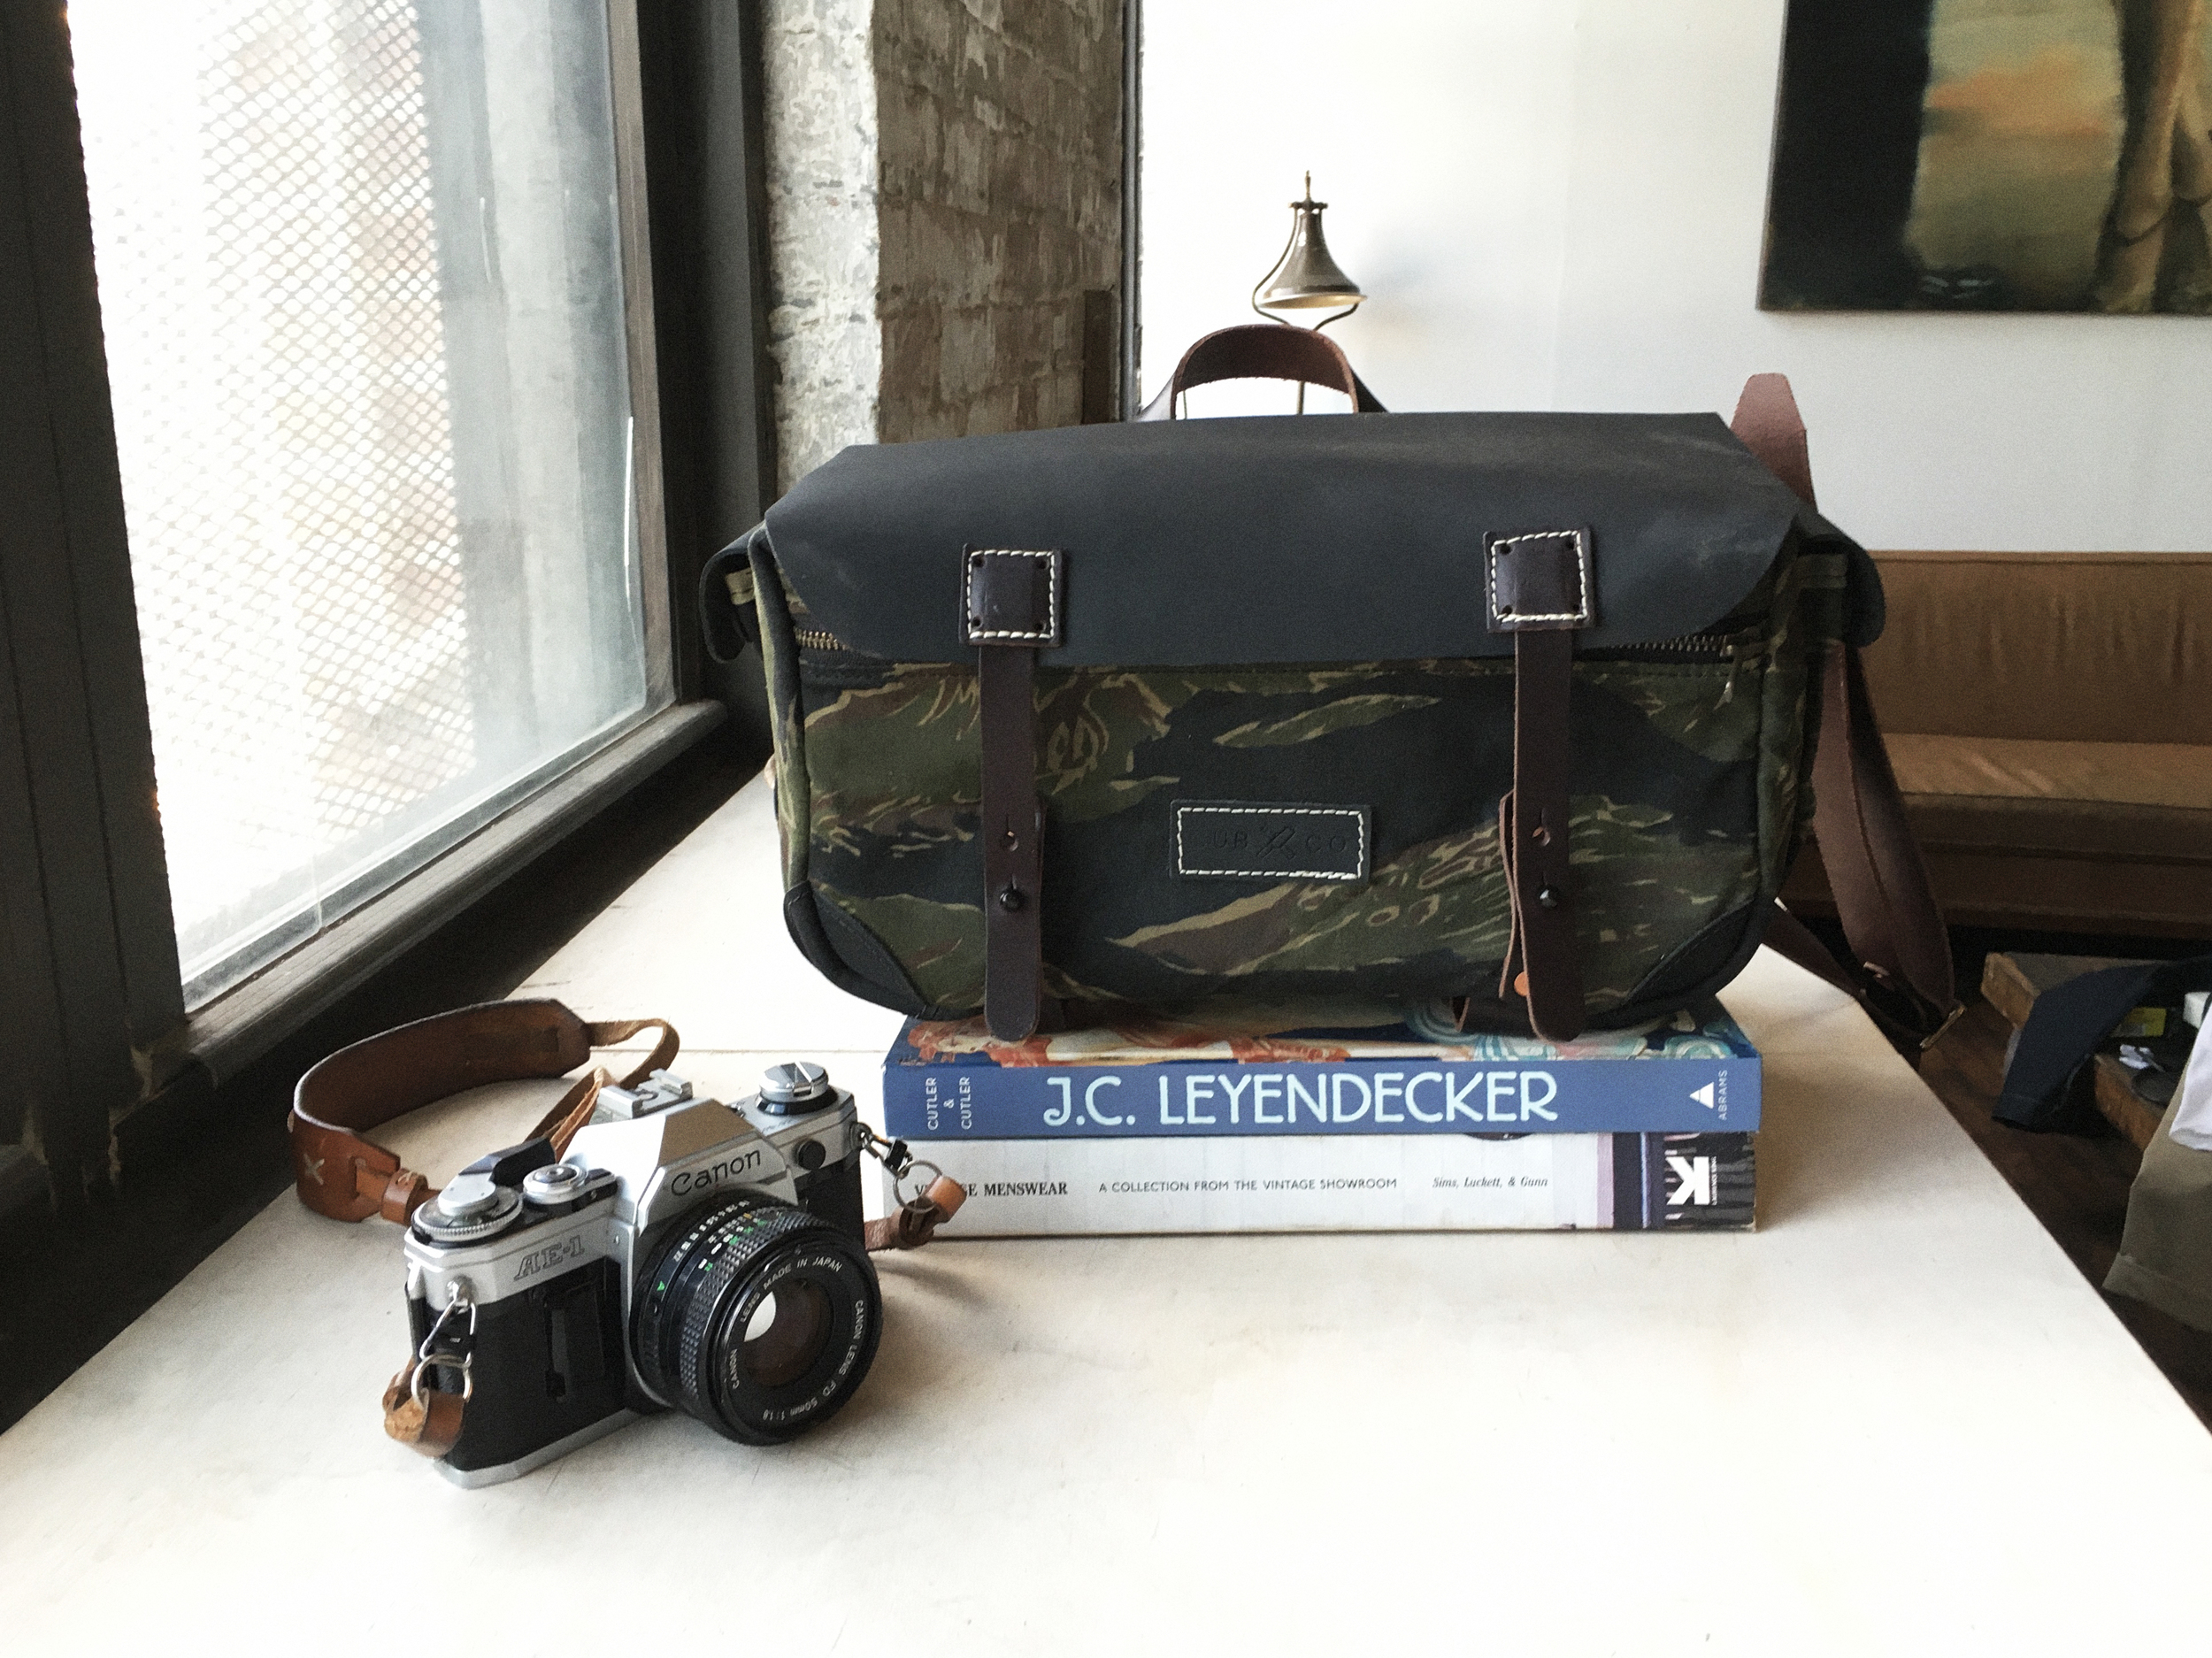 Kyle's last make: camera bags in collaboration with Cub and Co.